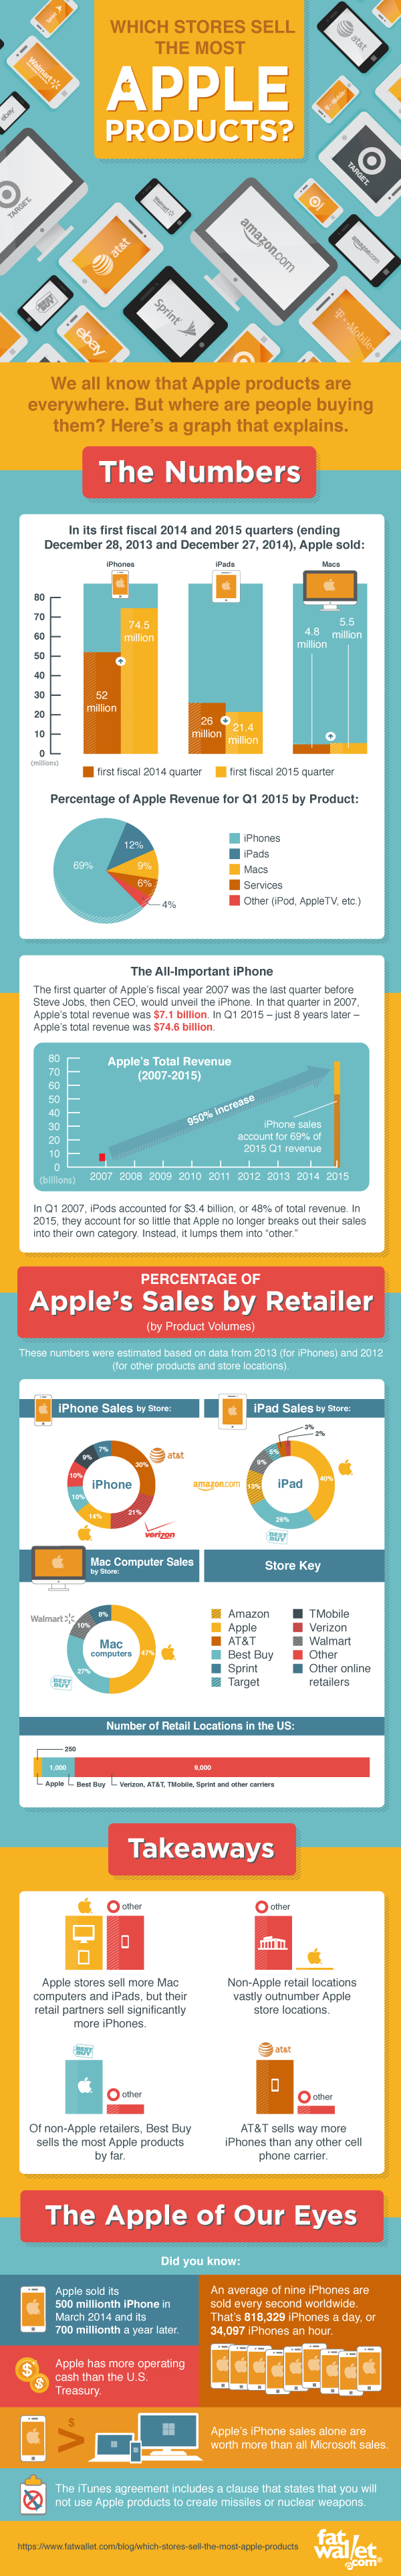 Which Stores Sell the Most Apple Products?